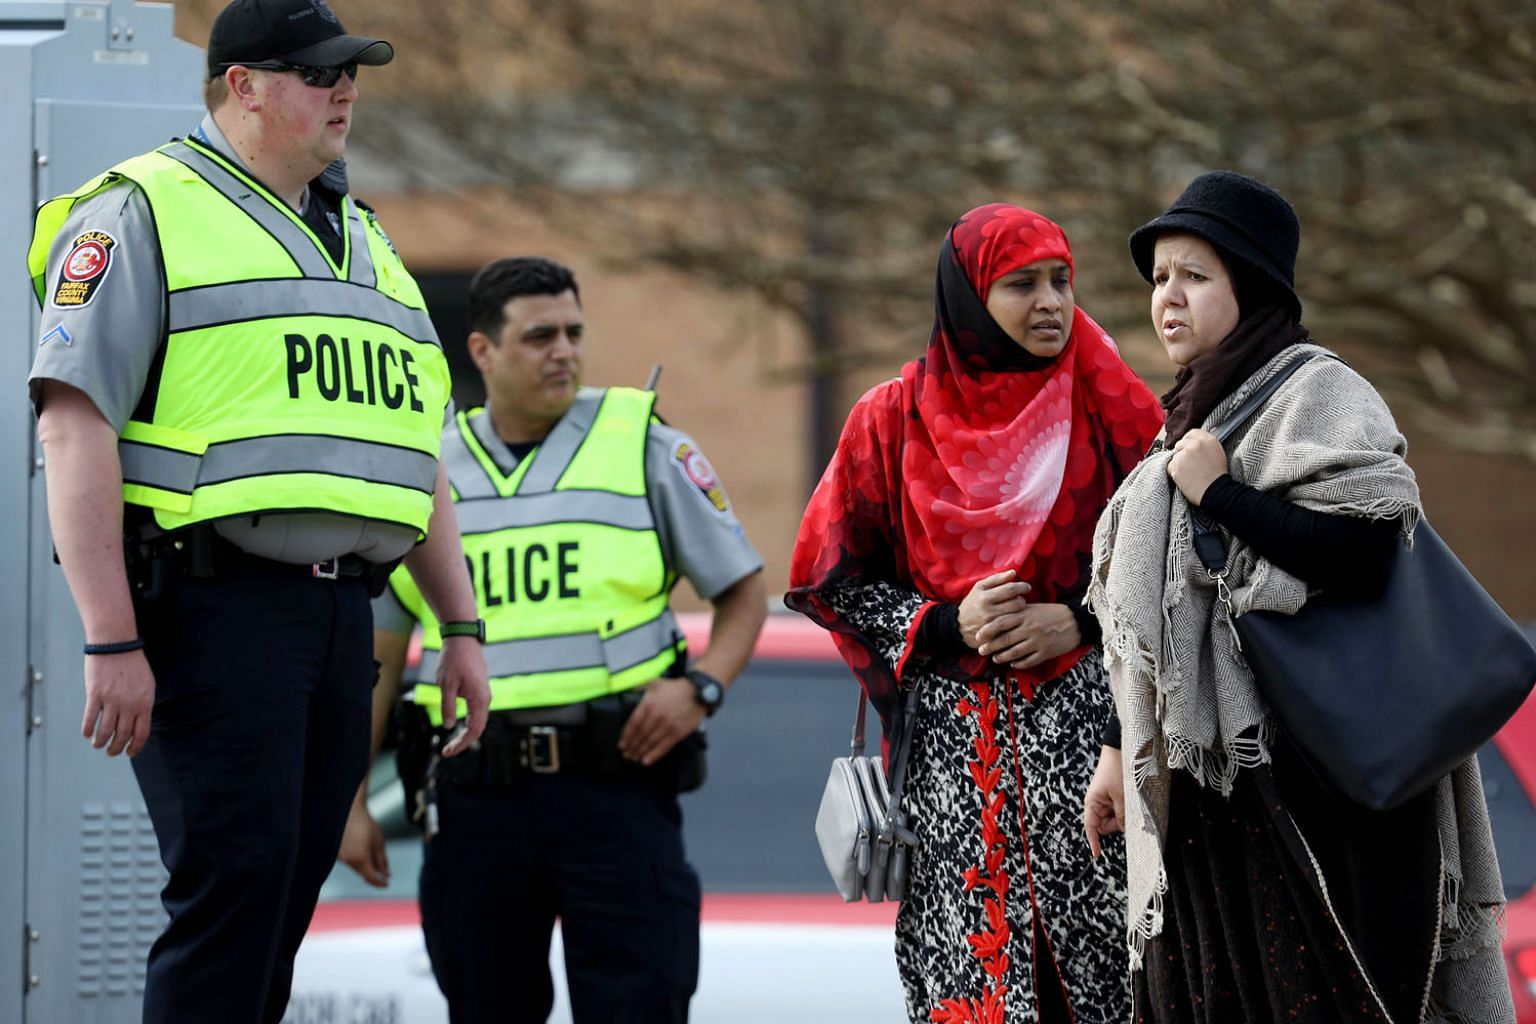 People arriving for Friday prayers amid heightened security at Dar Al Hijrah Islamic Centre in Falls Church, Virginia, after the New Zealand mosque shootings on March 15.